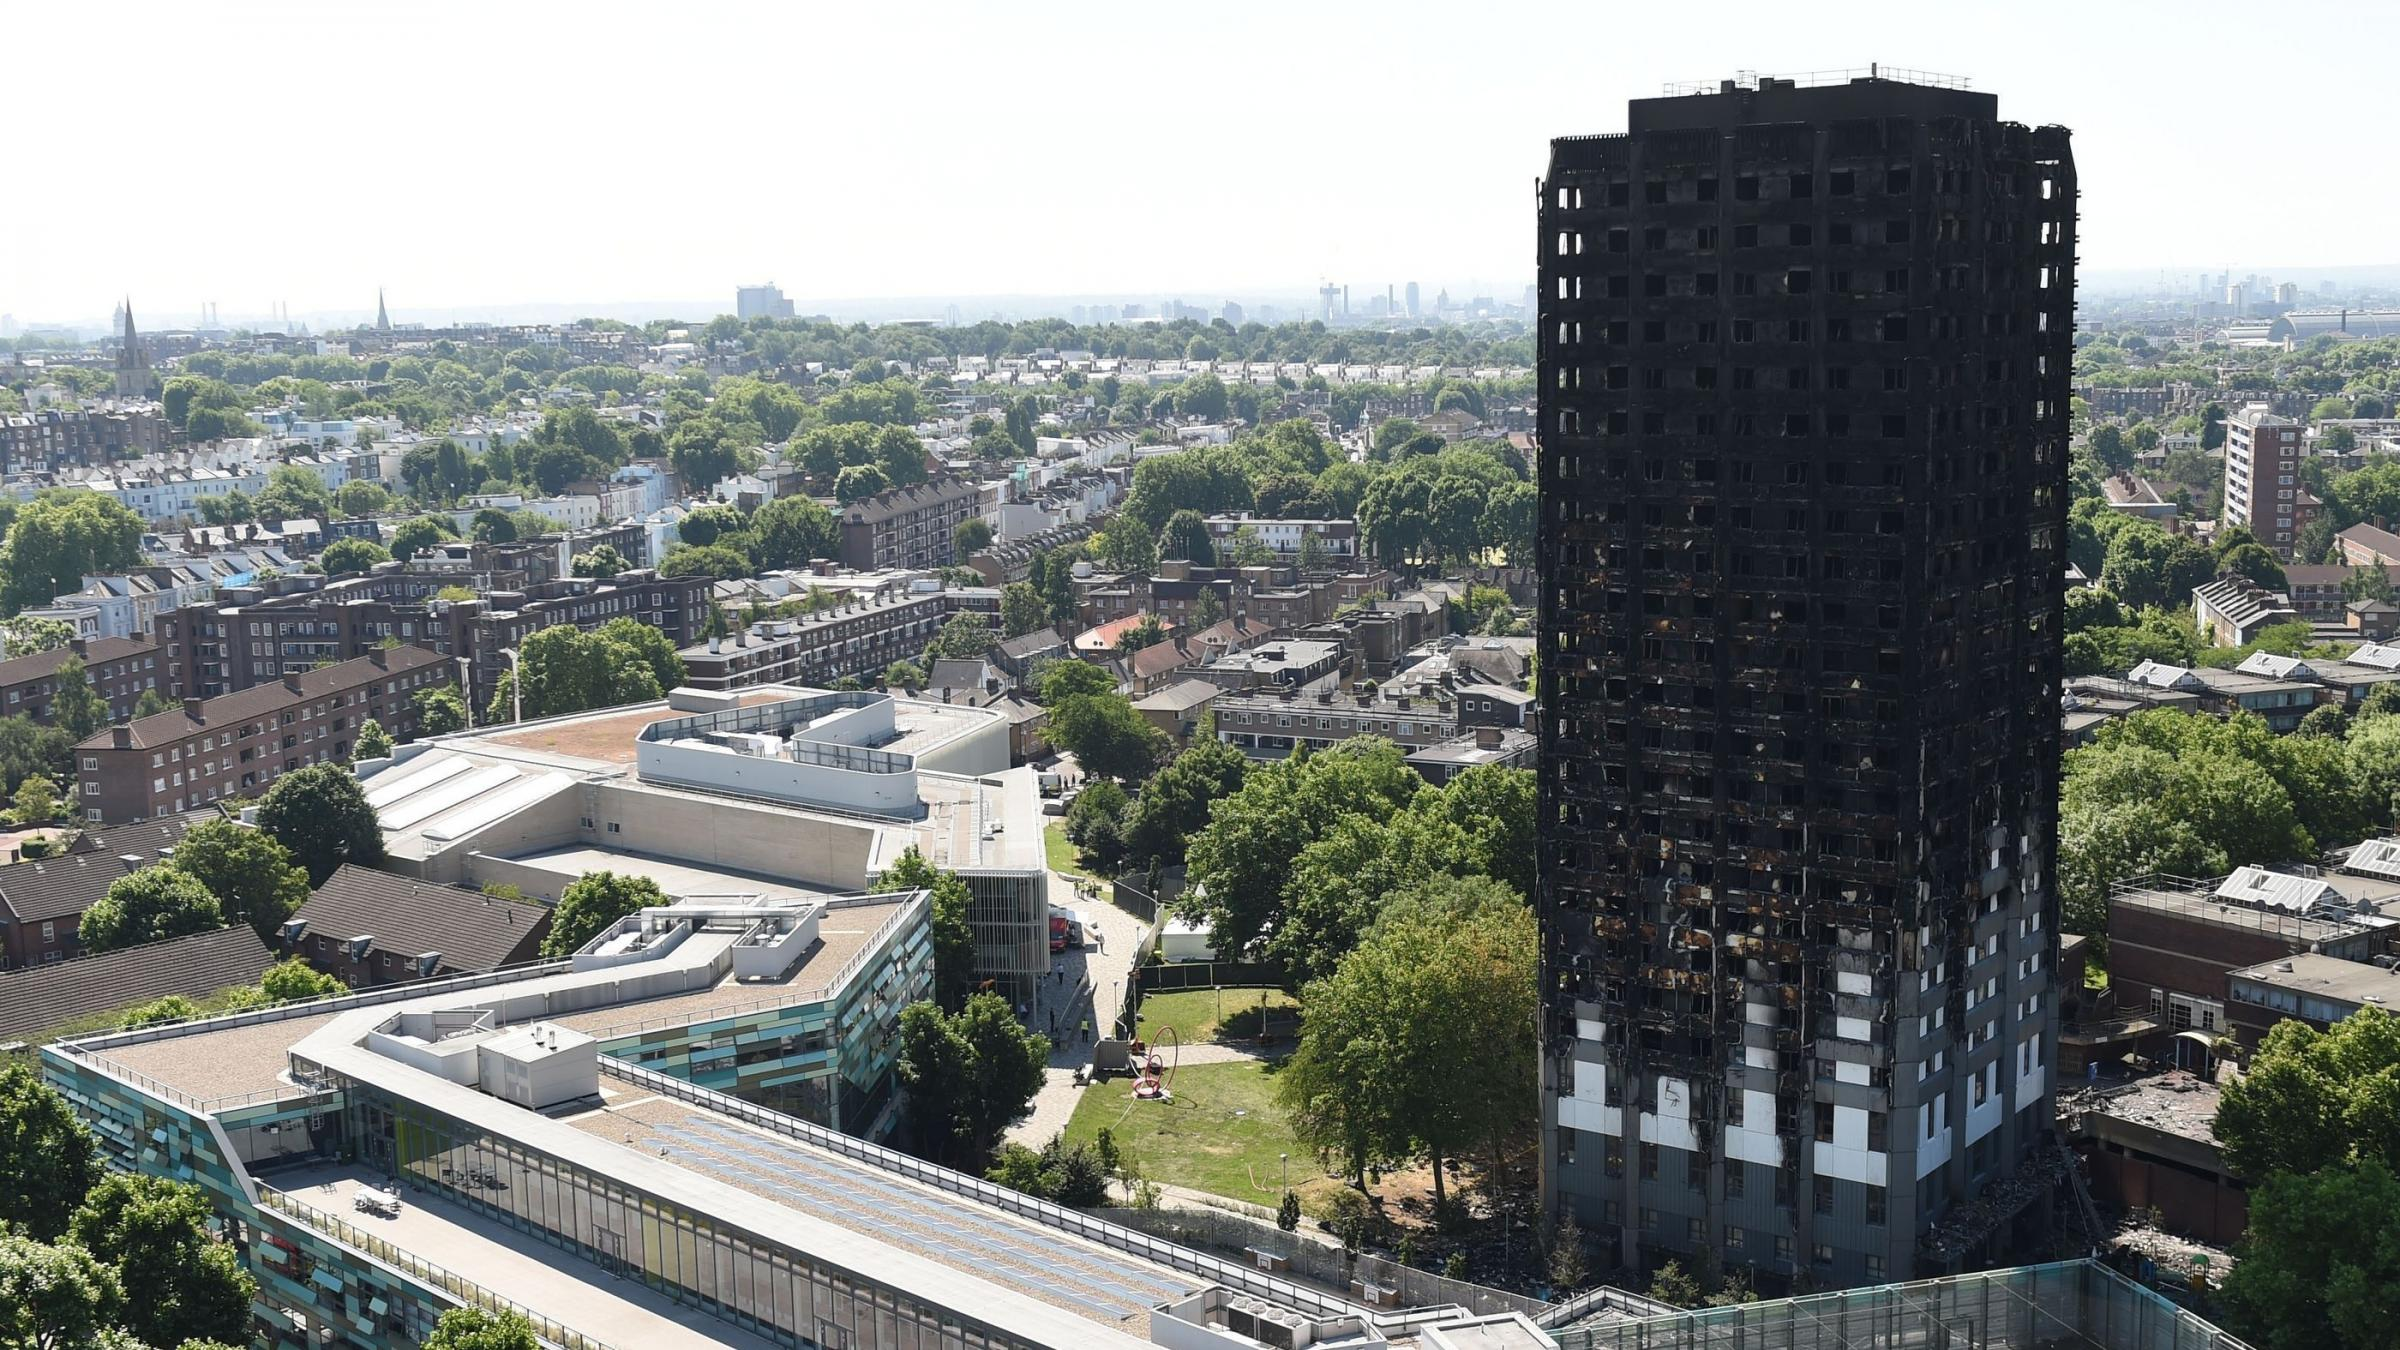 Identifying London's fire victims could take months